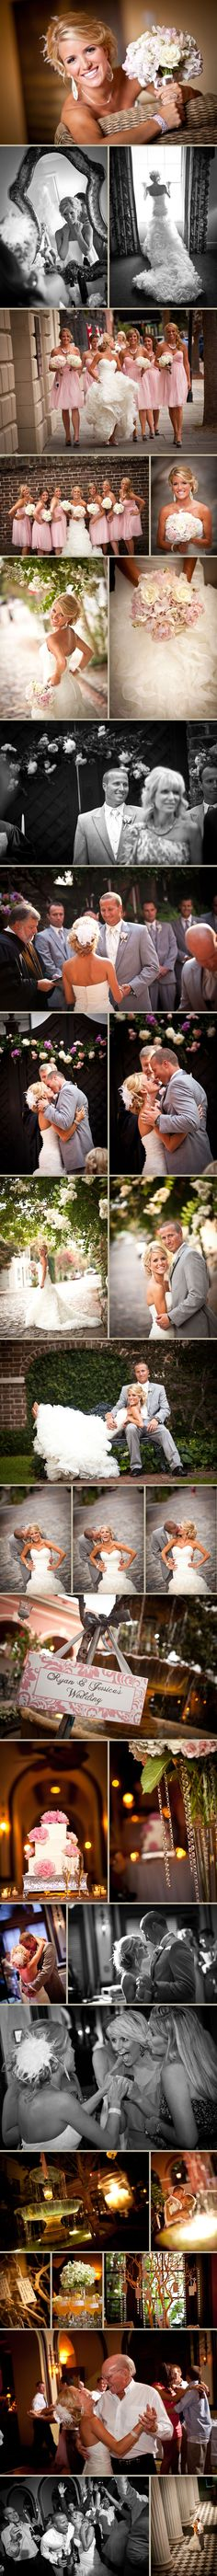 cute wedding poses